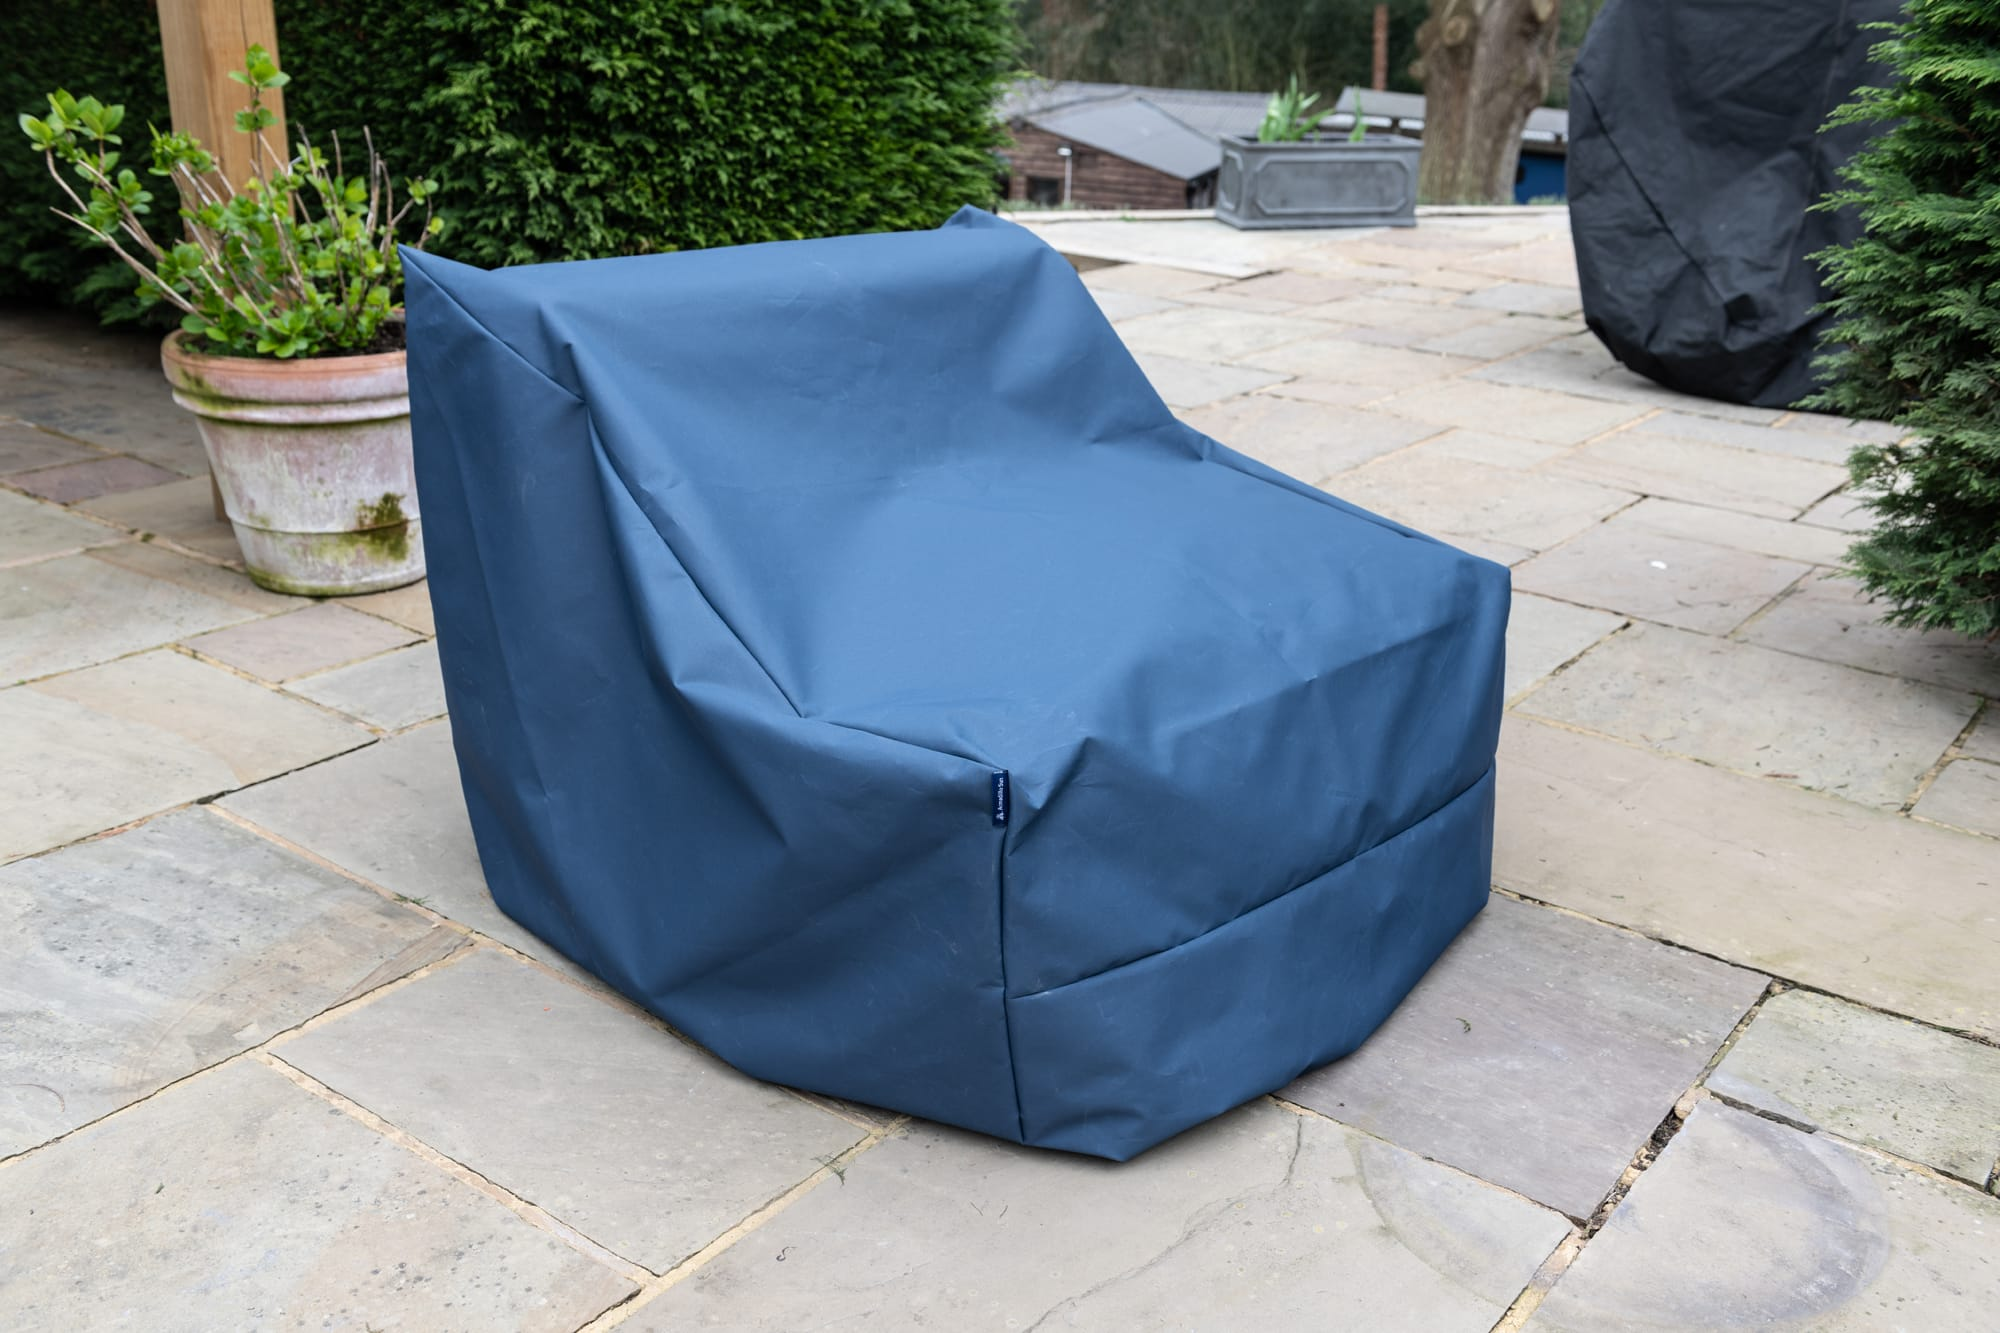 Winter Outdoor Covers For Bean Bag Chairs Outdoor Covers armadillosun